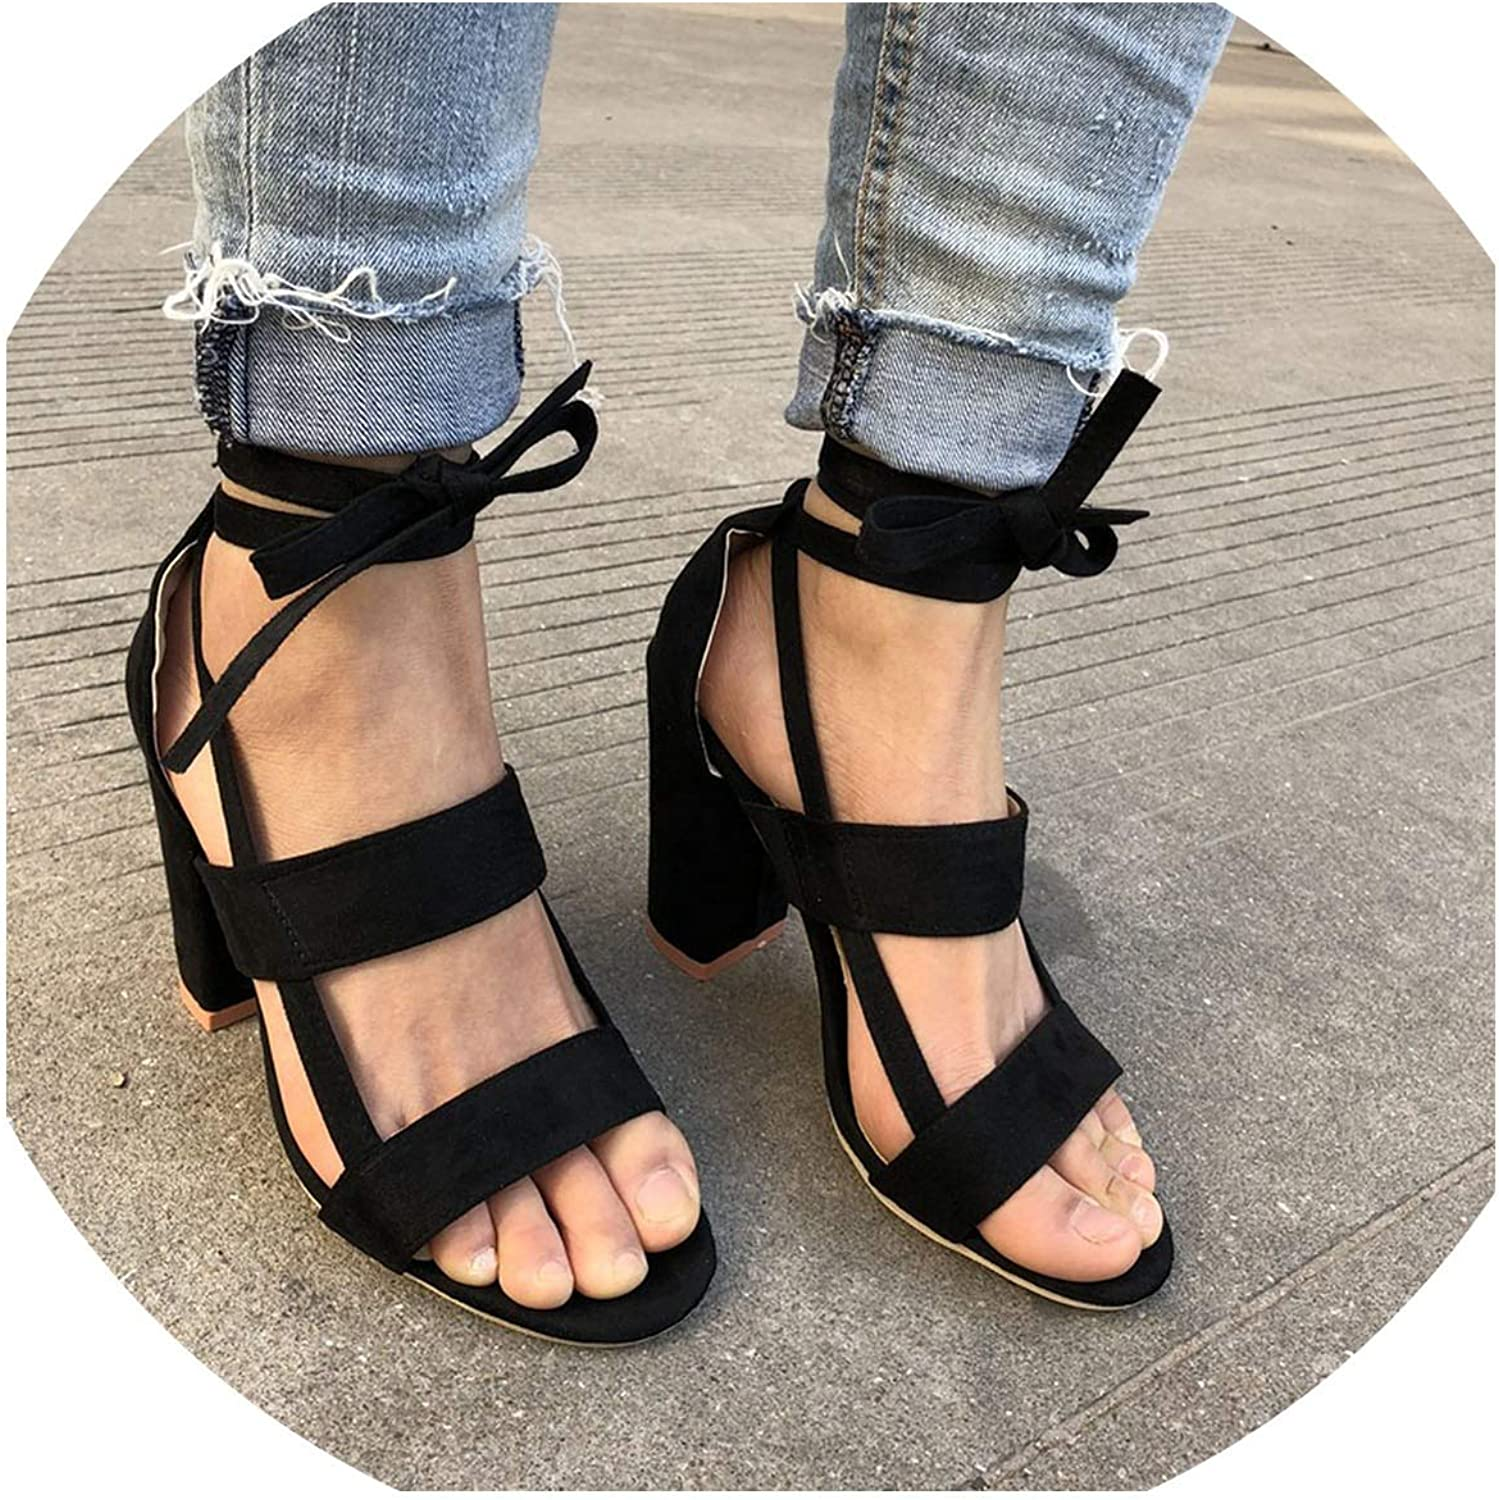 Monica's house Plus Size Female Ankle Strap High Heels shoes Thick Heel for Women Party Wedding,Black-D2312,7.5